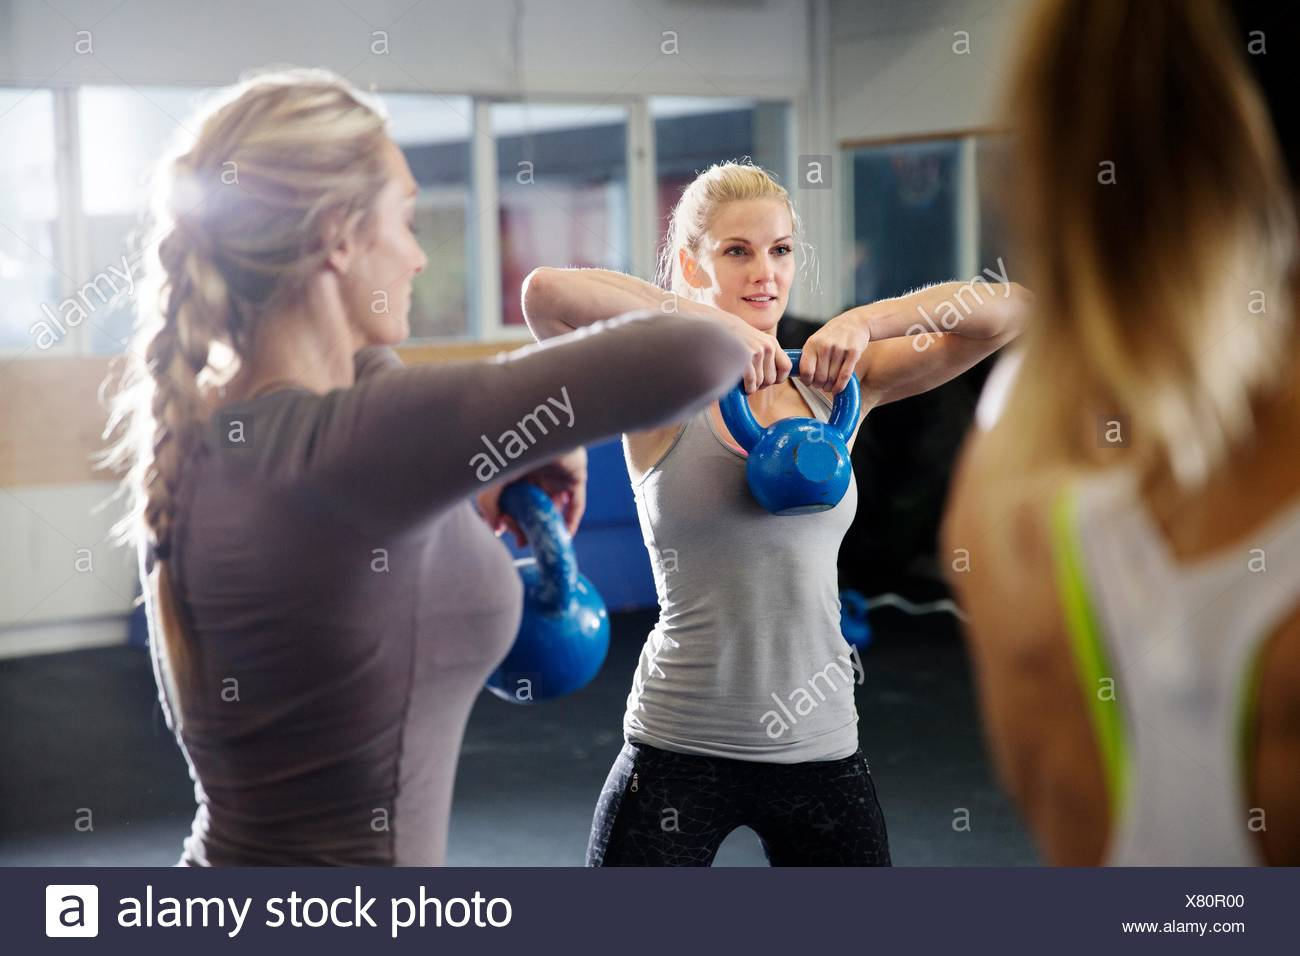 Women training with kettlebells in gym - Stock Image